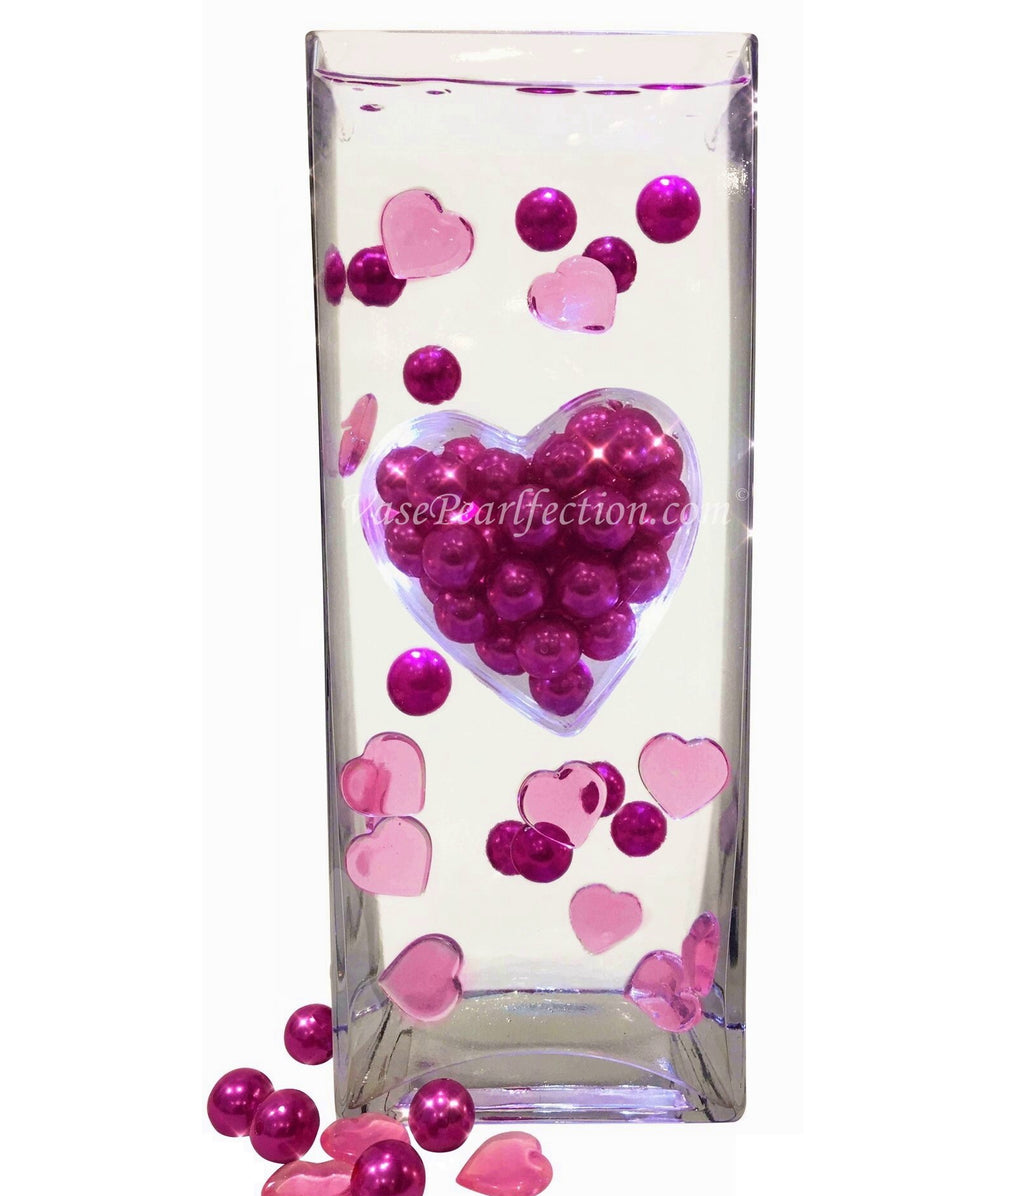 Floating Extra Jumbo Heart with Hot Pink Pearls & Heart Gems- DIY Vase Decorations & Table Scatter